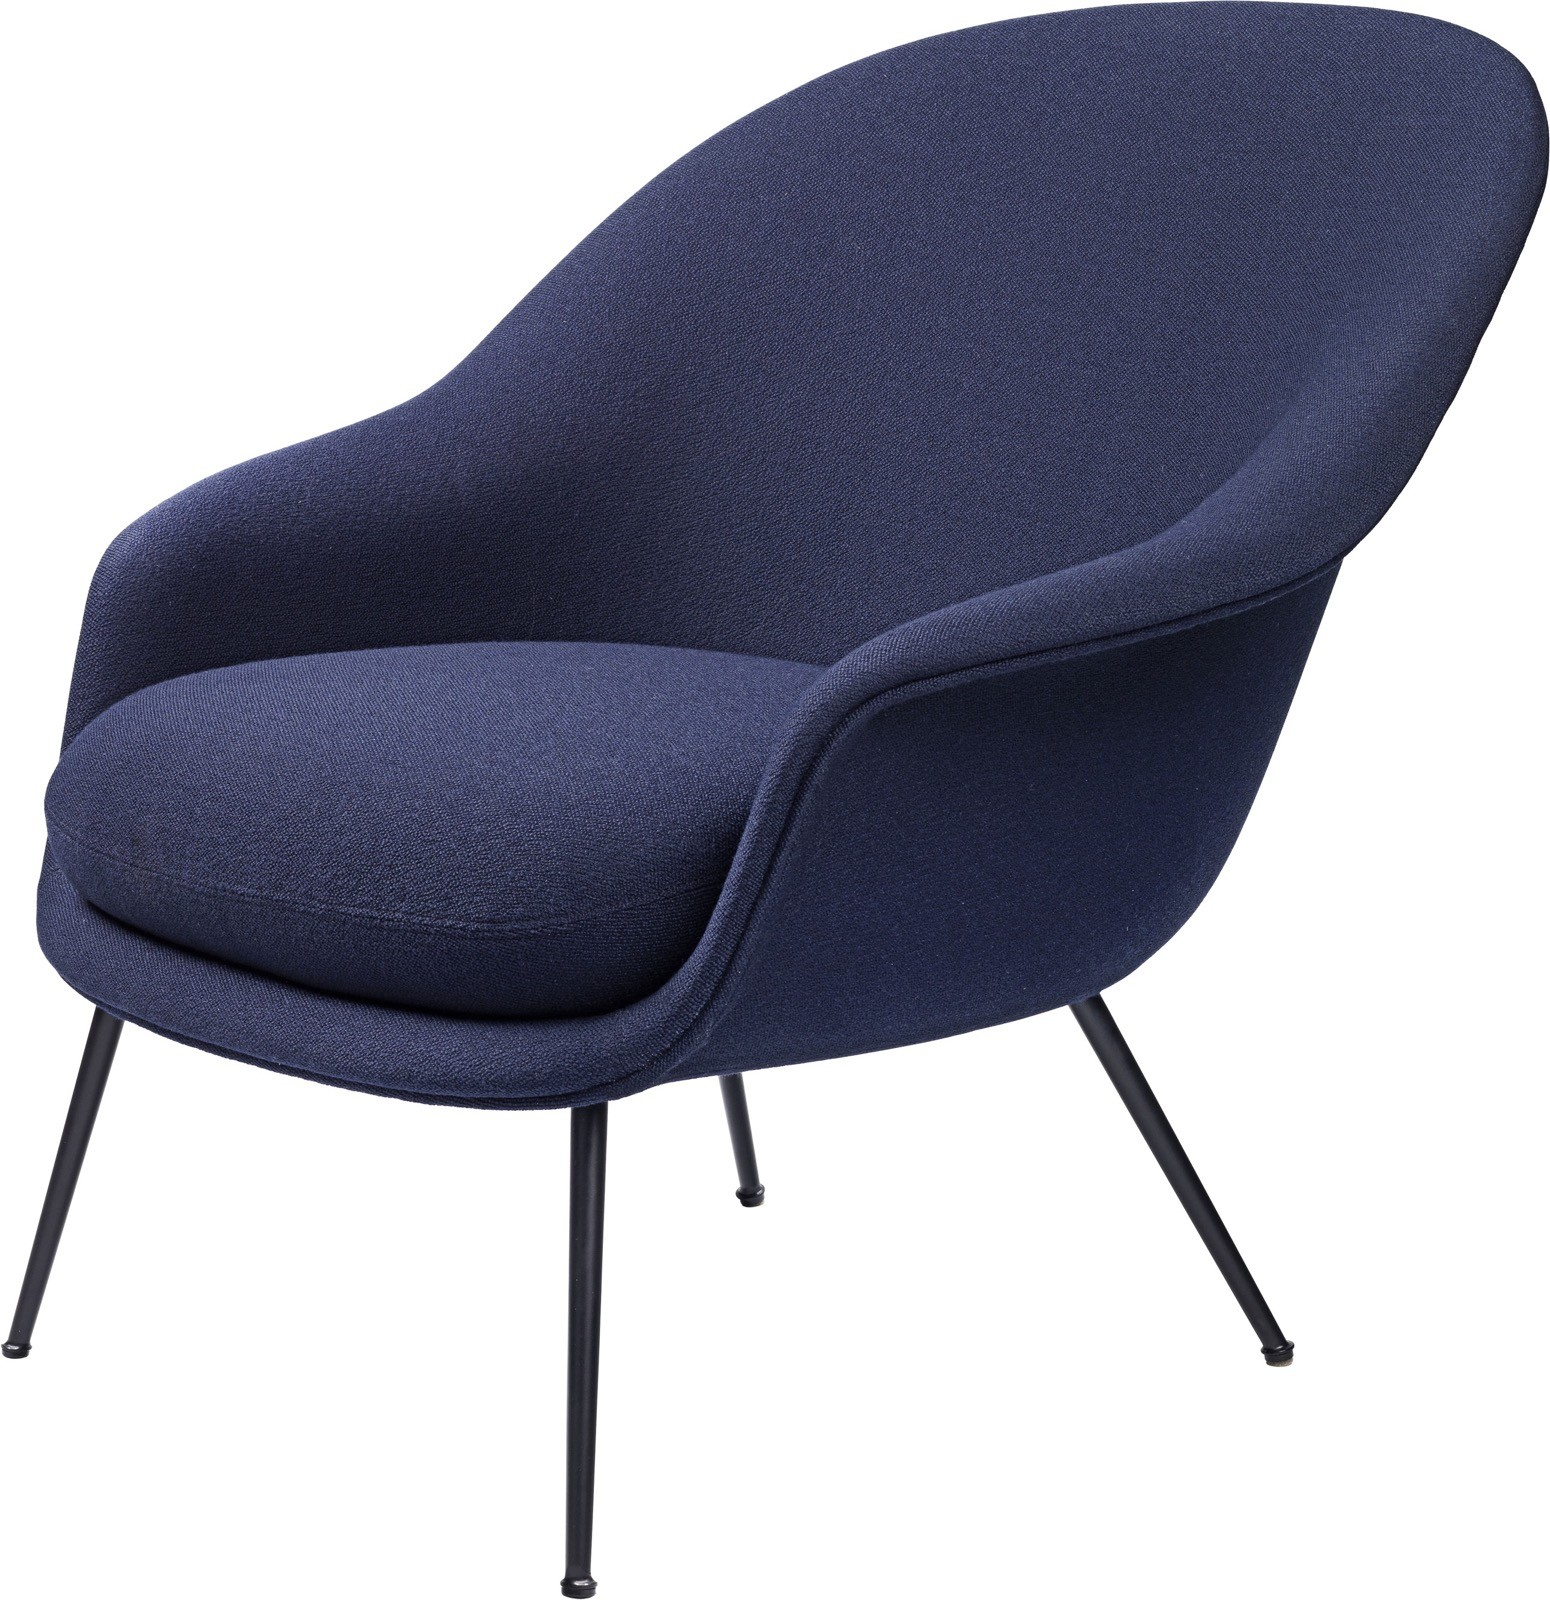 Bat Lounge Chair - Fully Upholstered, Low back, Conic base Gubi Metal Black, Price Grp. 01